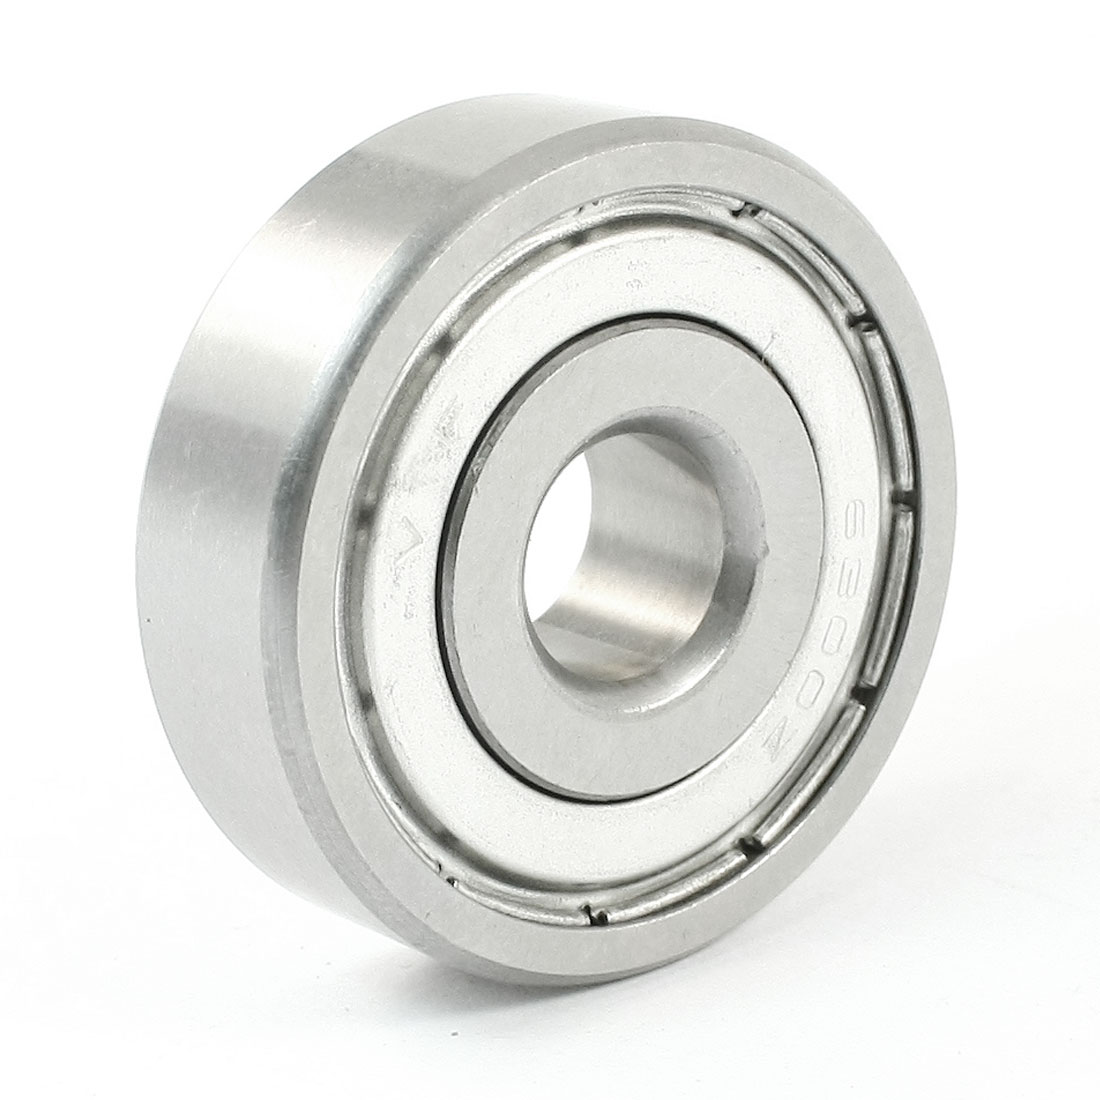 Unique Bargains 10mmx35mmx11mm Double Shielded 6300Z Deep Groove Ball Bearing - image 1 of 1